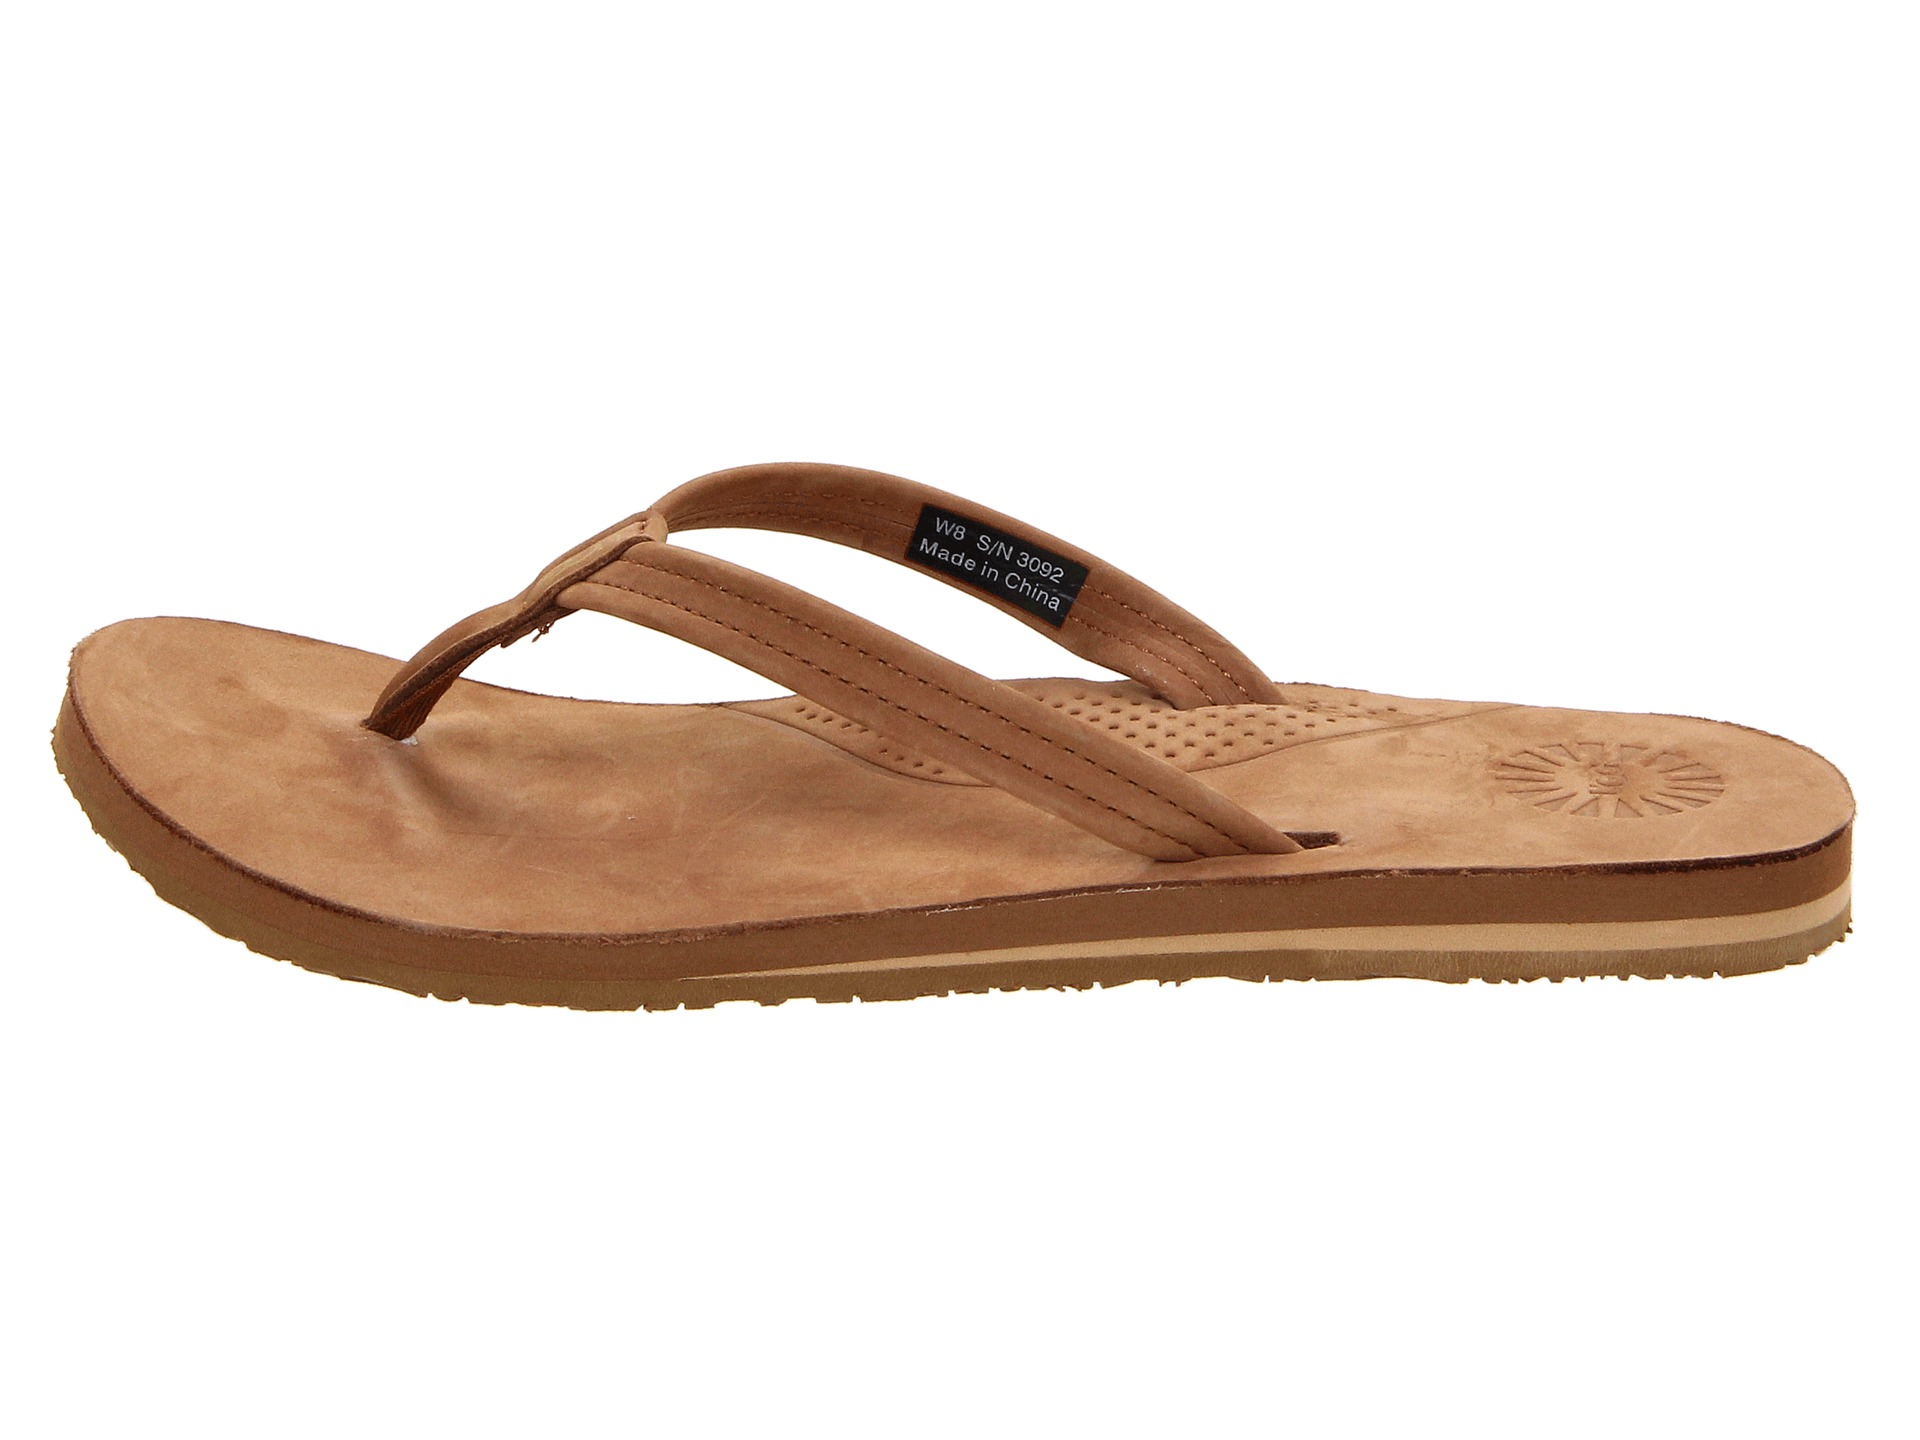 zappos ugg flip flops. Black Bedroom Furniture Sets. Home Design Ideas